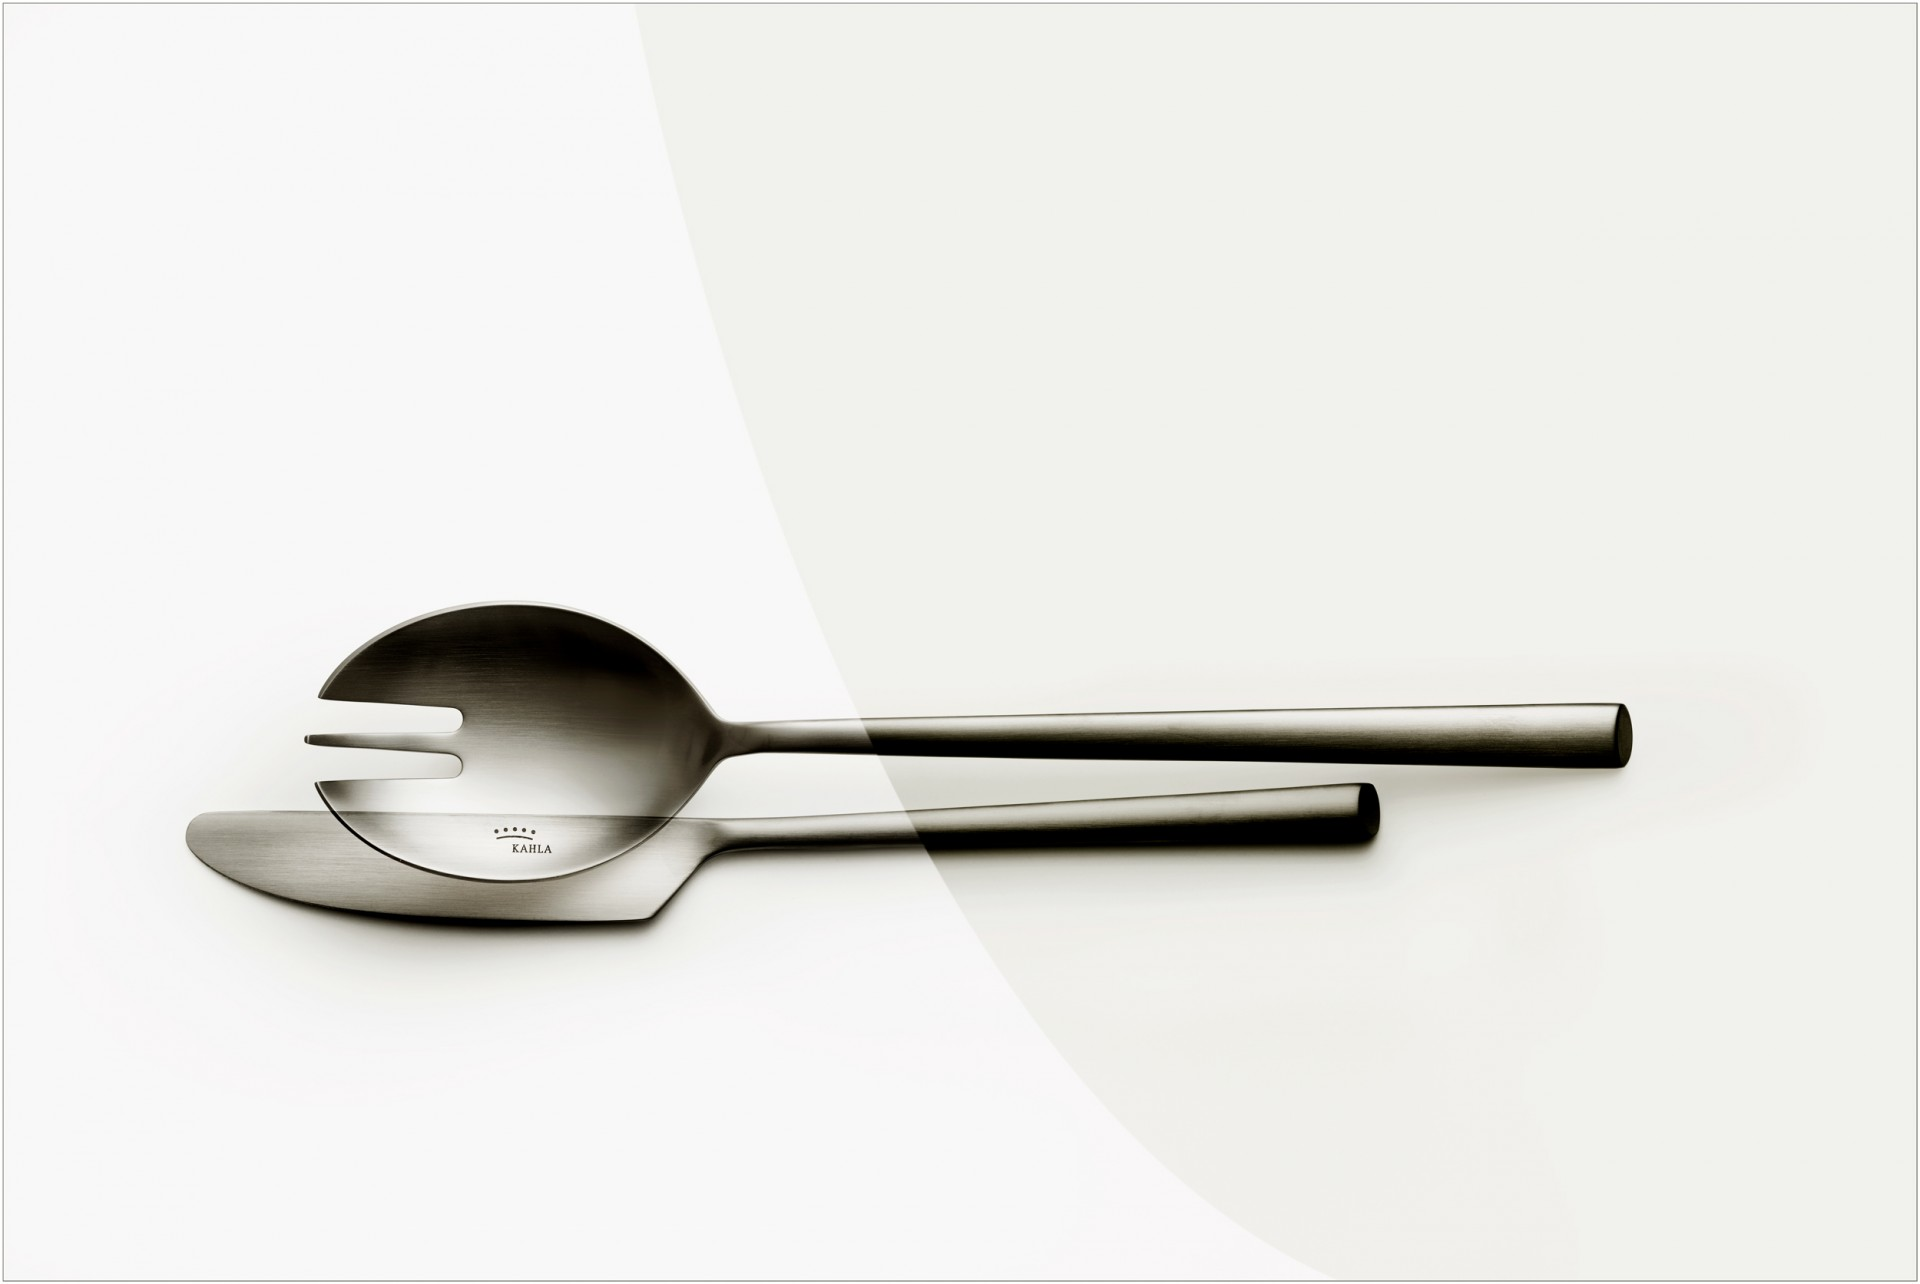 Peter Marshall Photography Kahla Cutlery